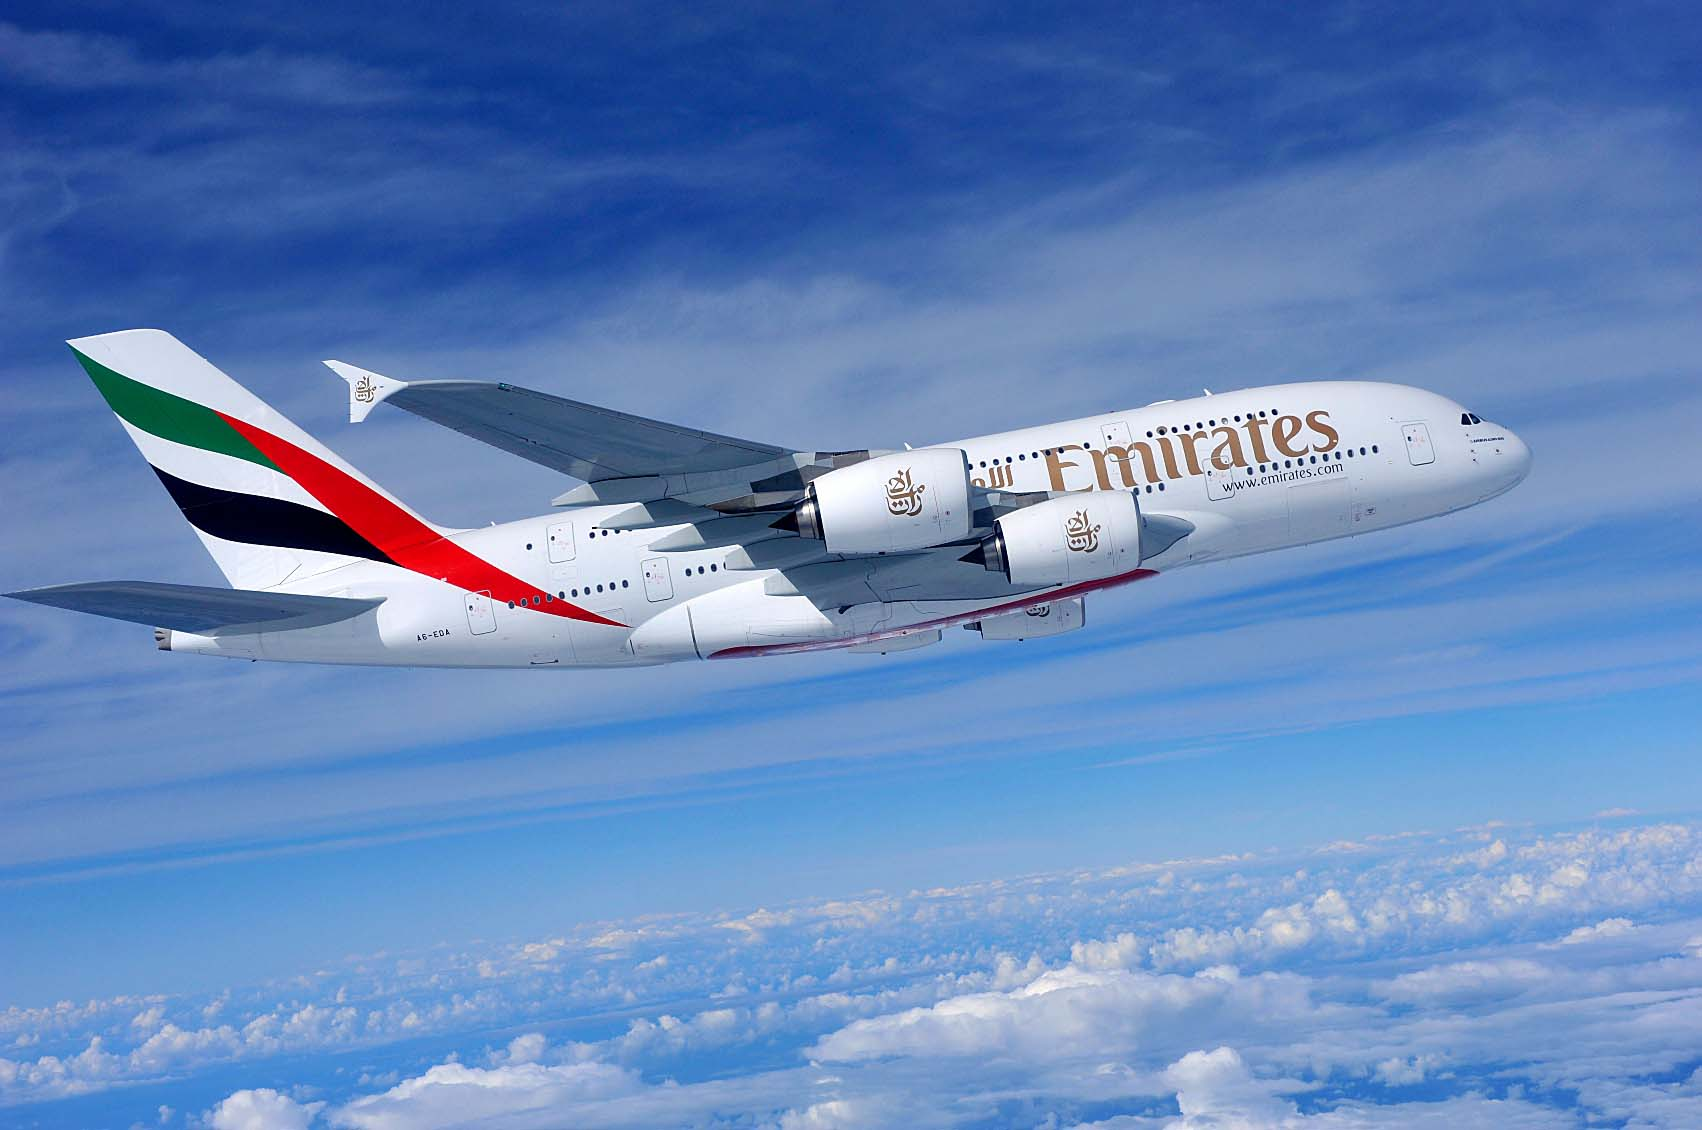 Emirates-Image-A380-Air-to-air